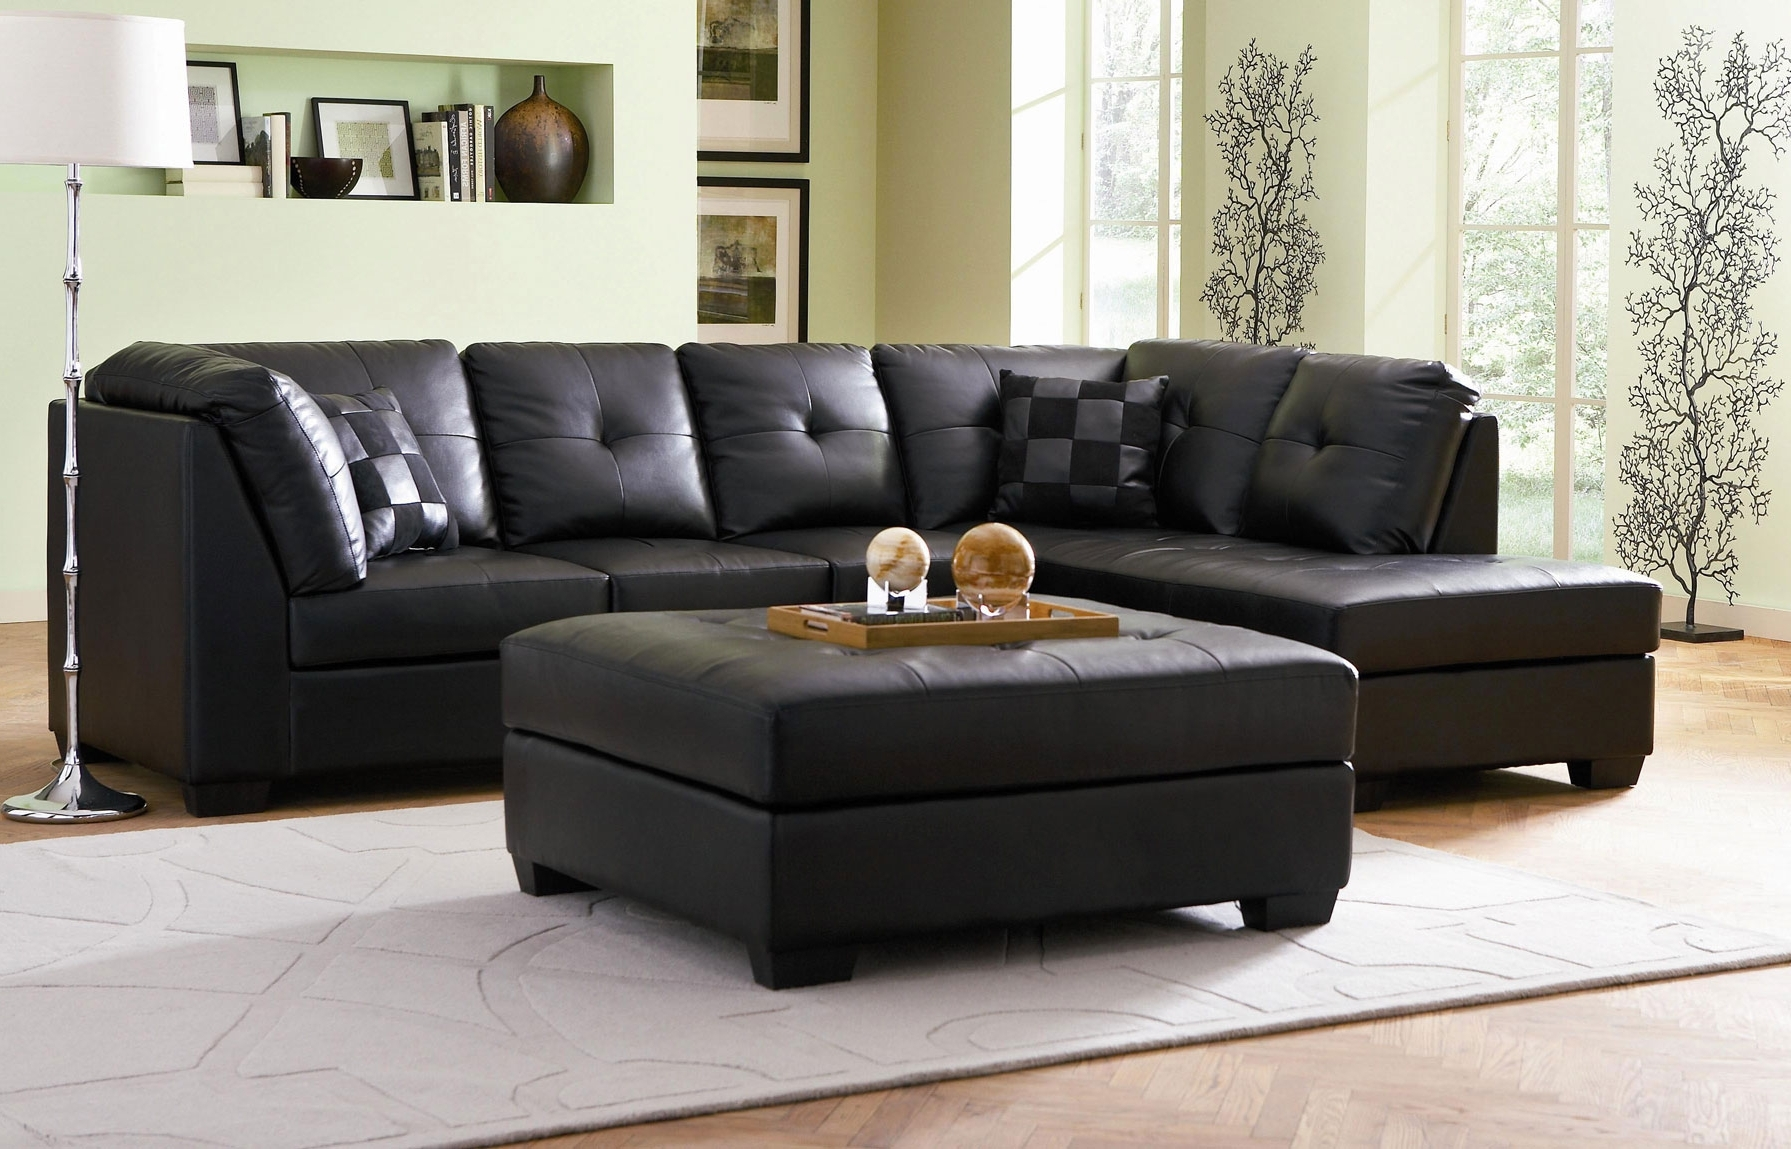 Sectional Sofa: The Best Sectional Sofas Charlotte Nc Sofa Mart Pertaining To Preferred Sectional Sofas In Charlotte Nc (View 11 of 20)